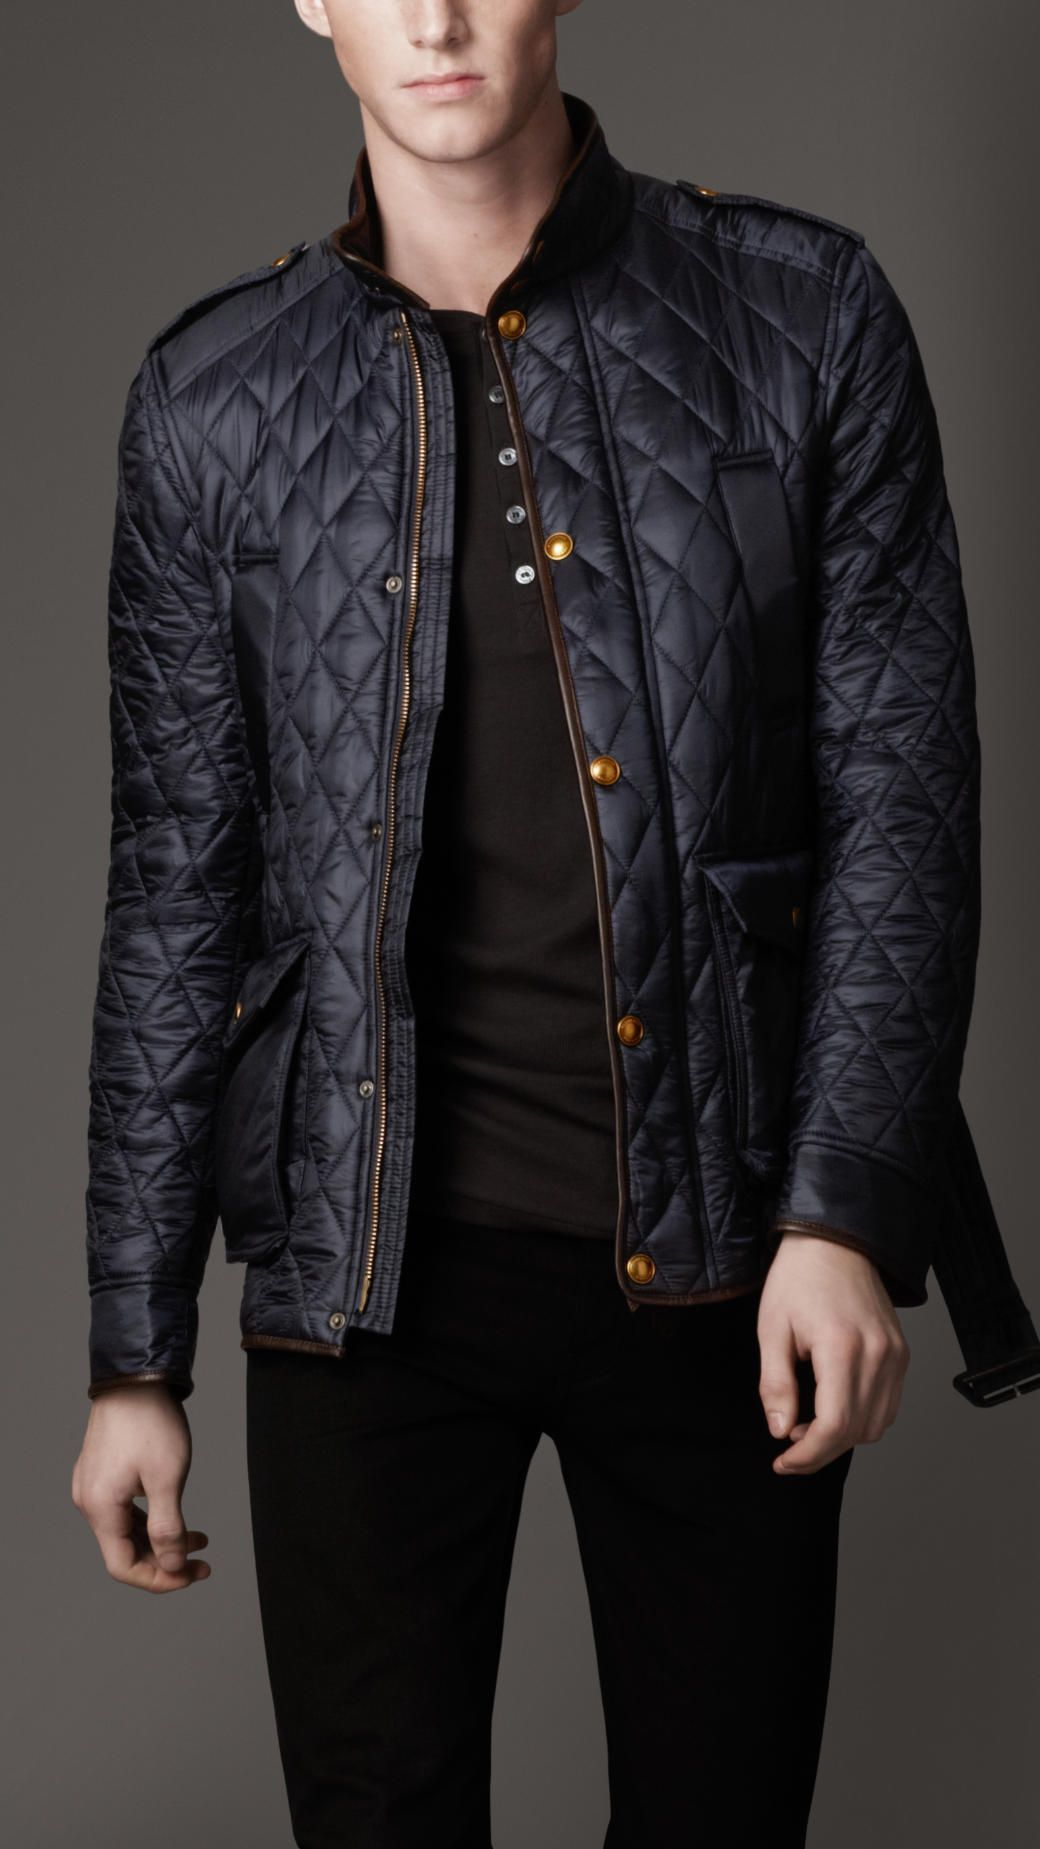 Quilted Jackets & Puffer Jackets for Men : leather quilted jacket men - Adamdwight.com